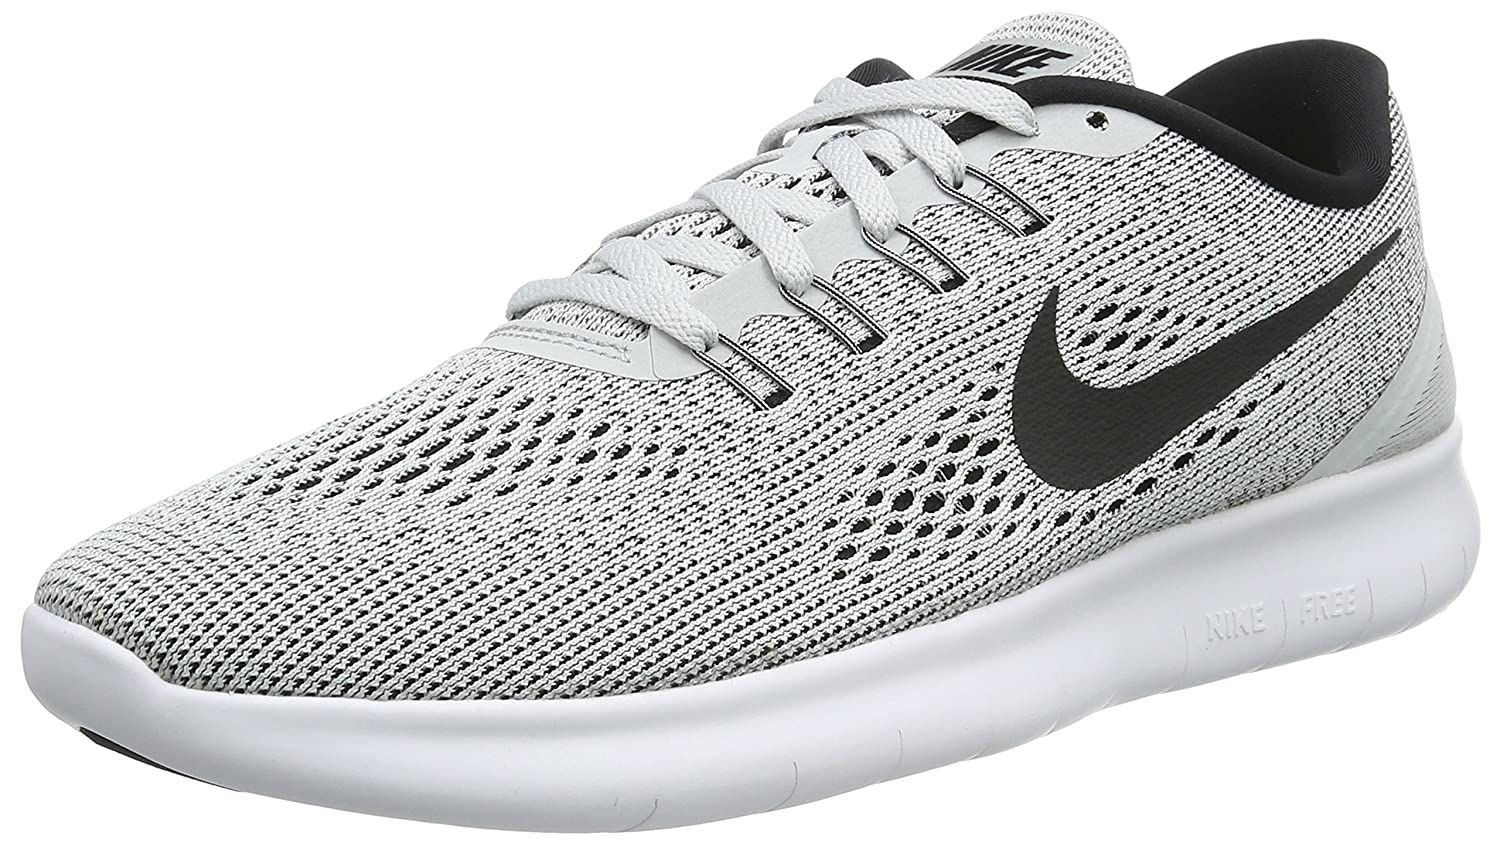 NIKE Men's Free RN Running Shoe B0147SNK34 8.5 D(M) US|White/Pure Platinum/Black